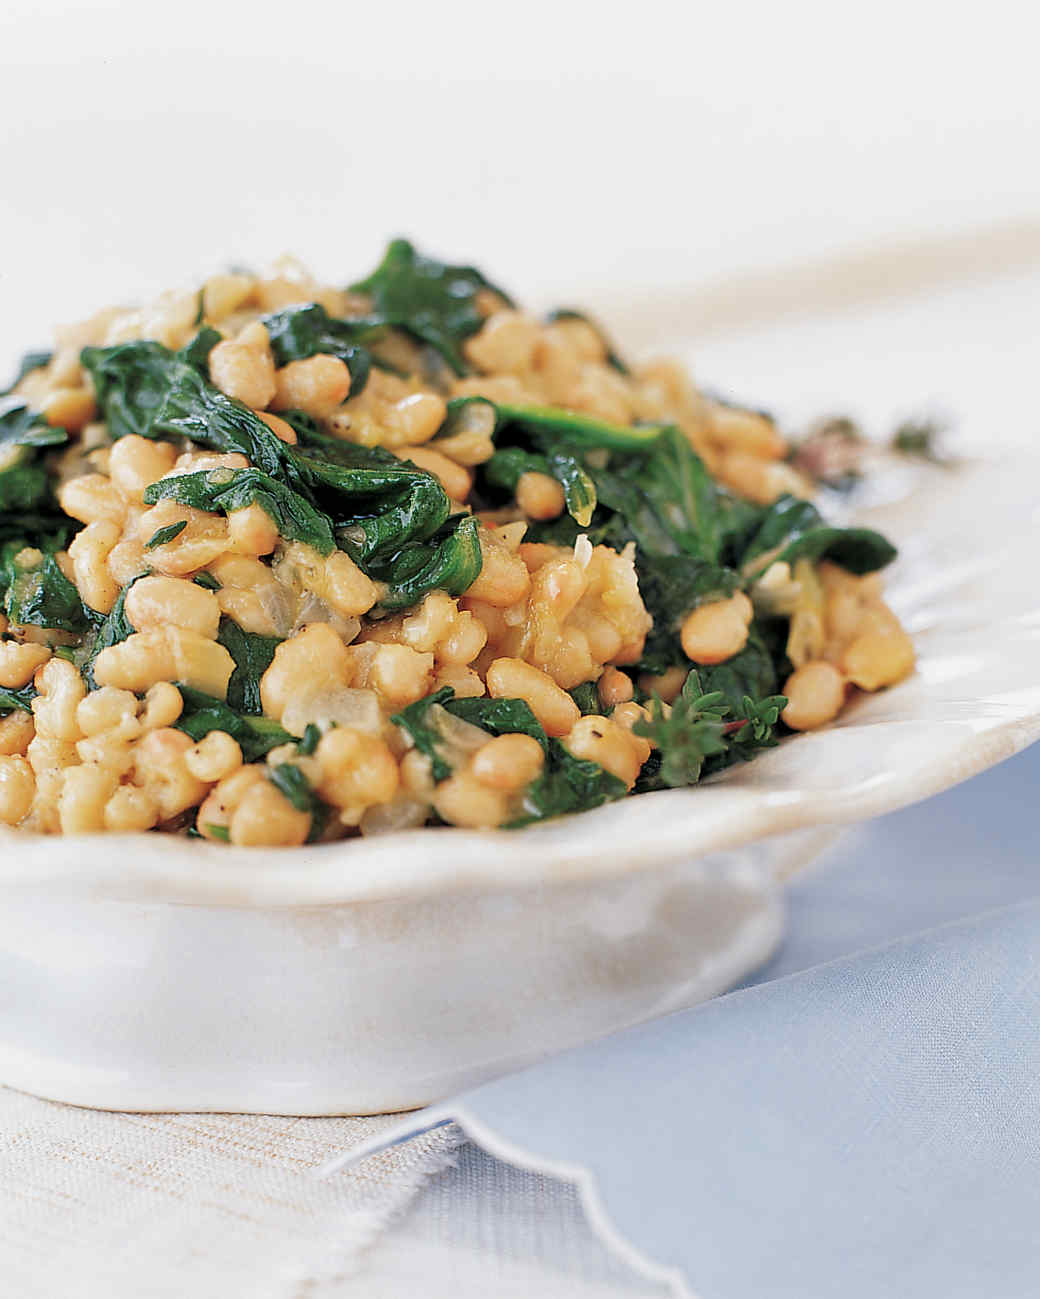 Sauteed Spinach and White Beans